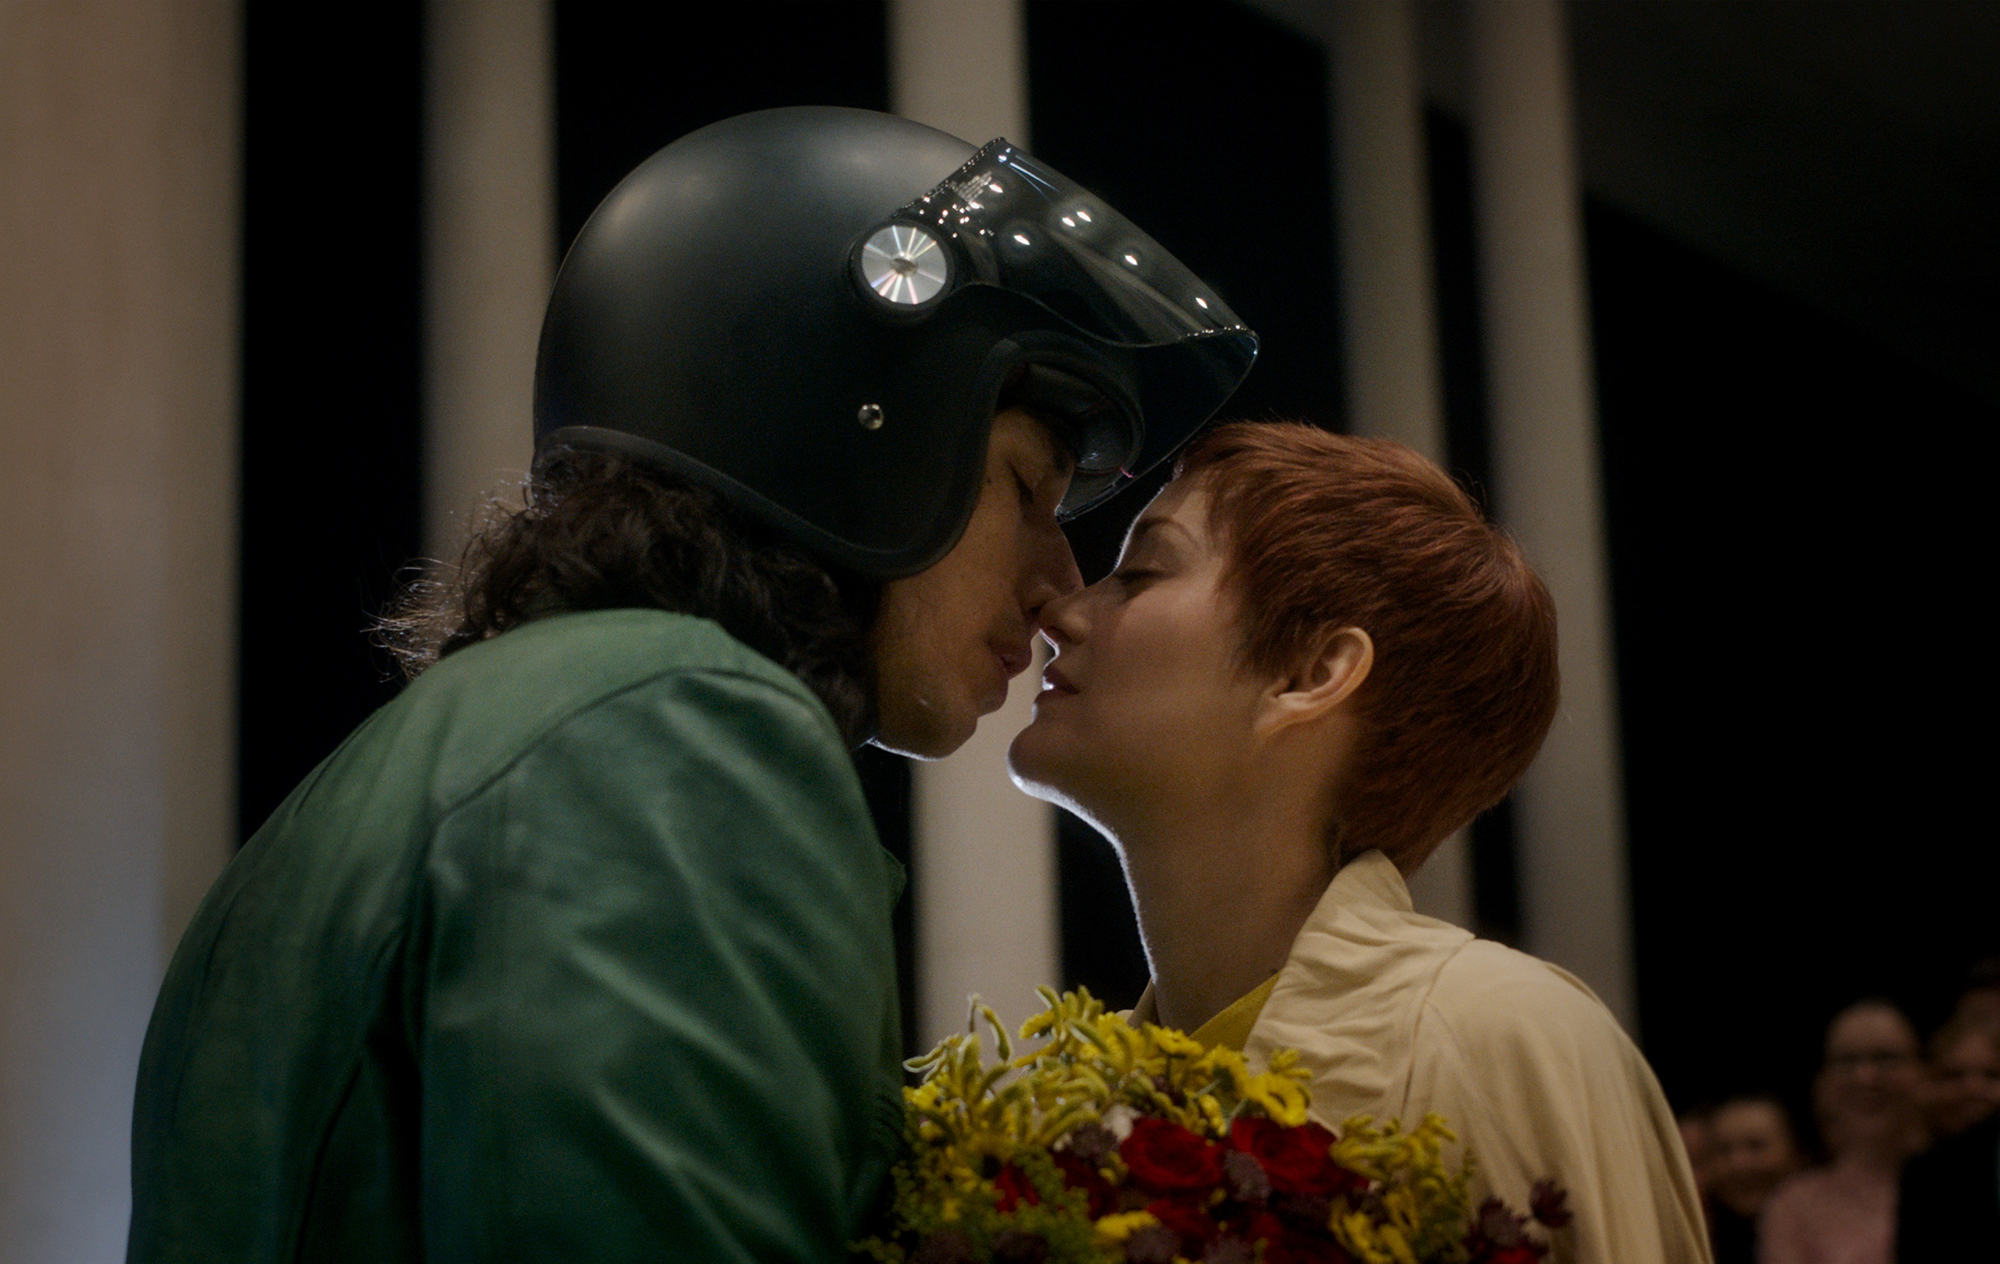 A man and a woman lean in for a kiss.